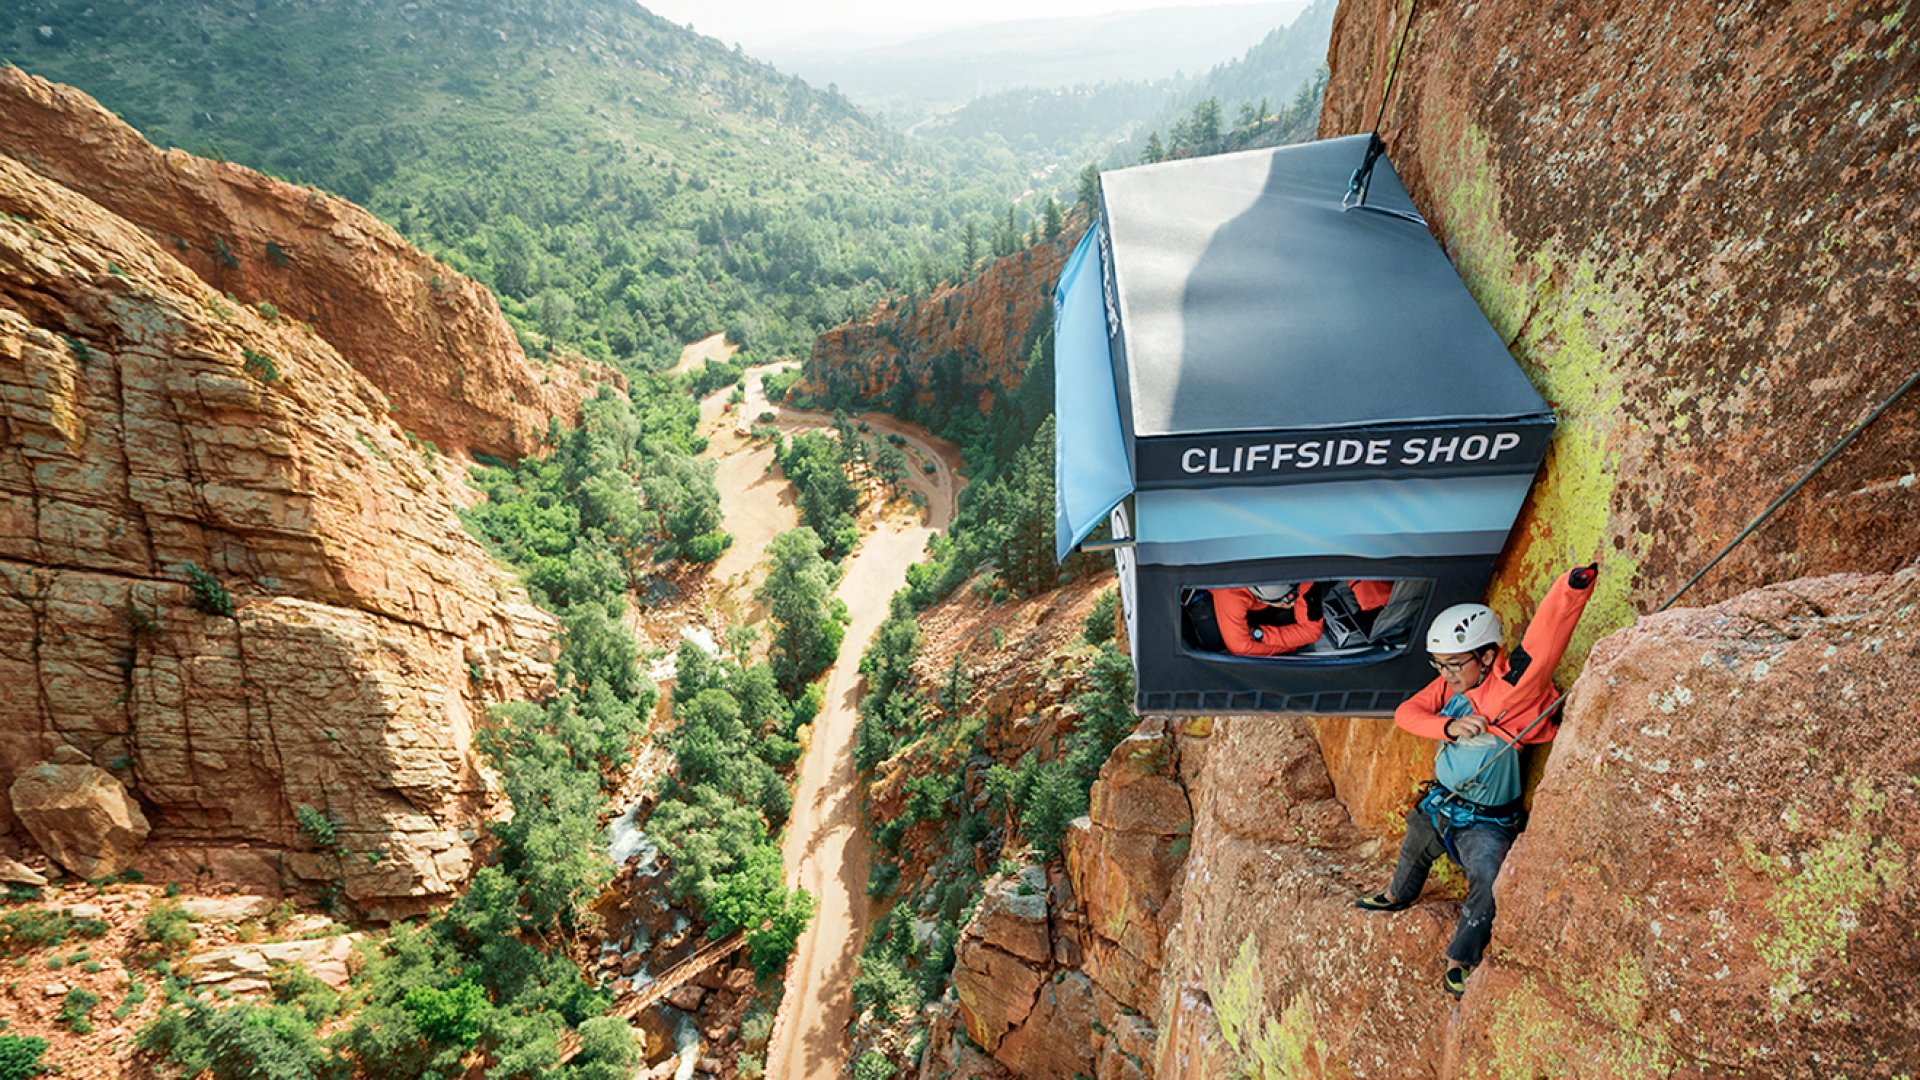 Talk About Tough Customers: These People Climbed 300 Feet to Reach a Store